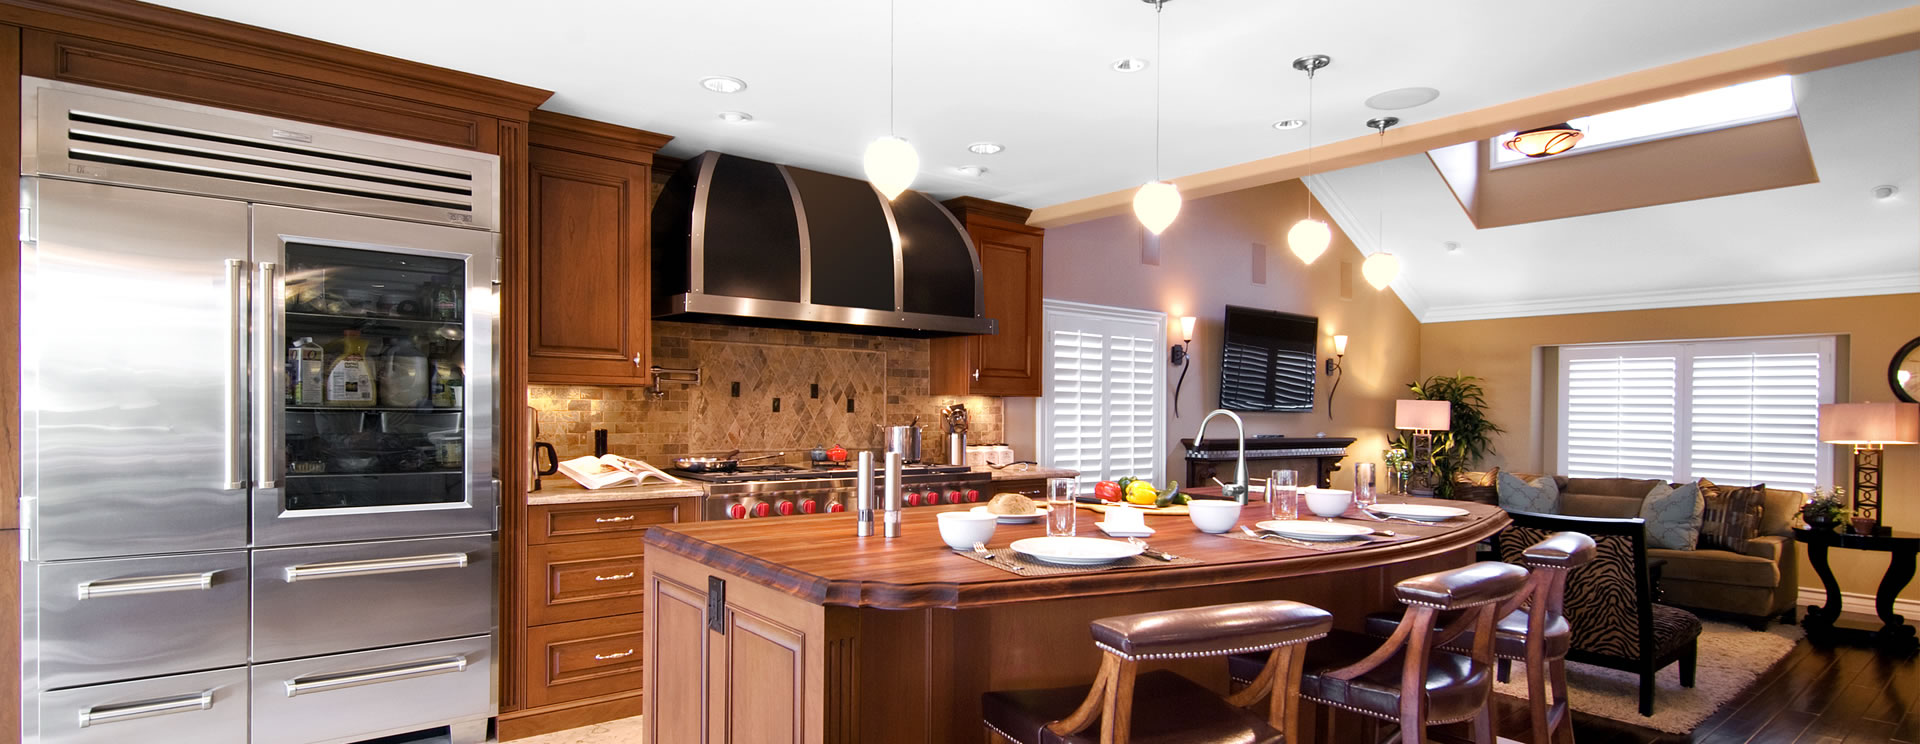 open spaces in yorba linda | le gourmet kitchen ltd.